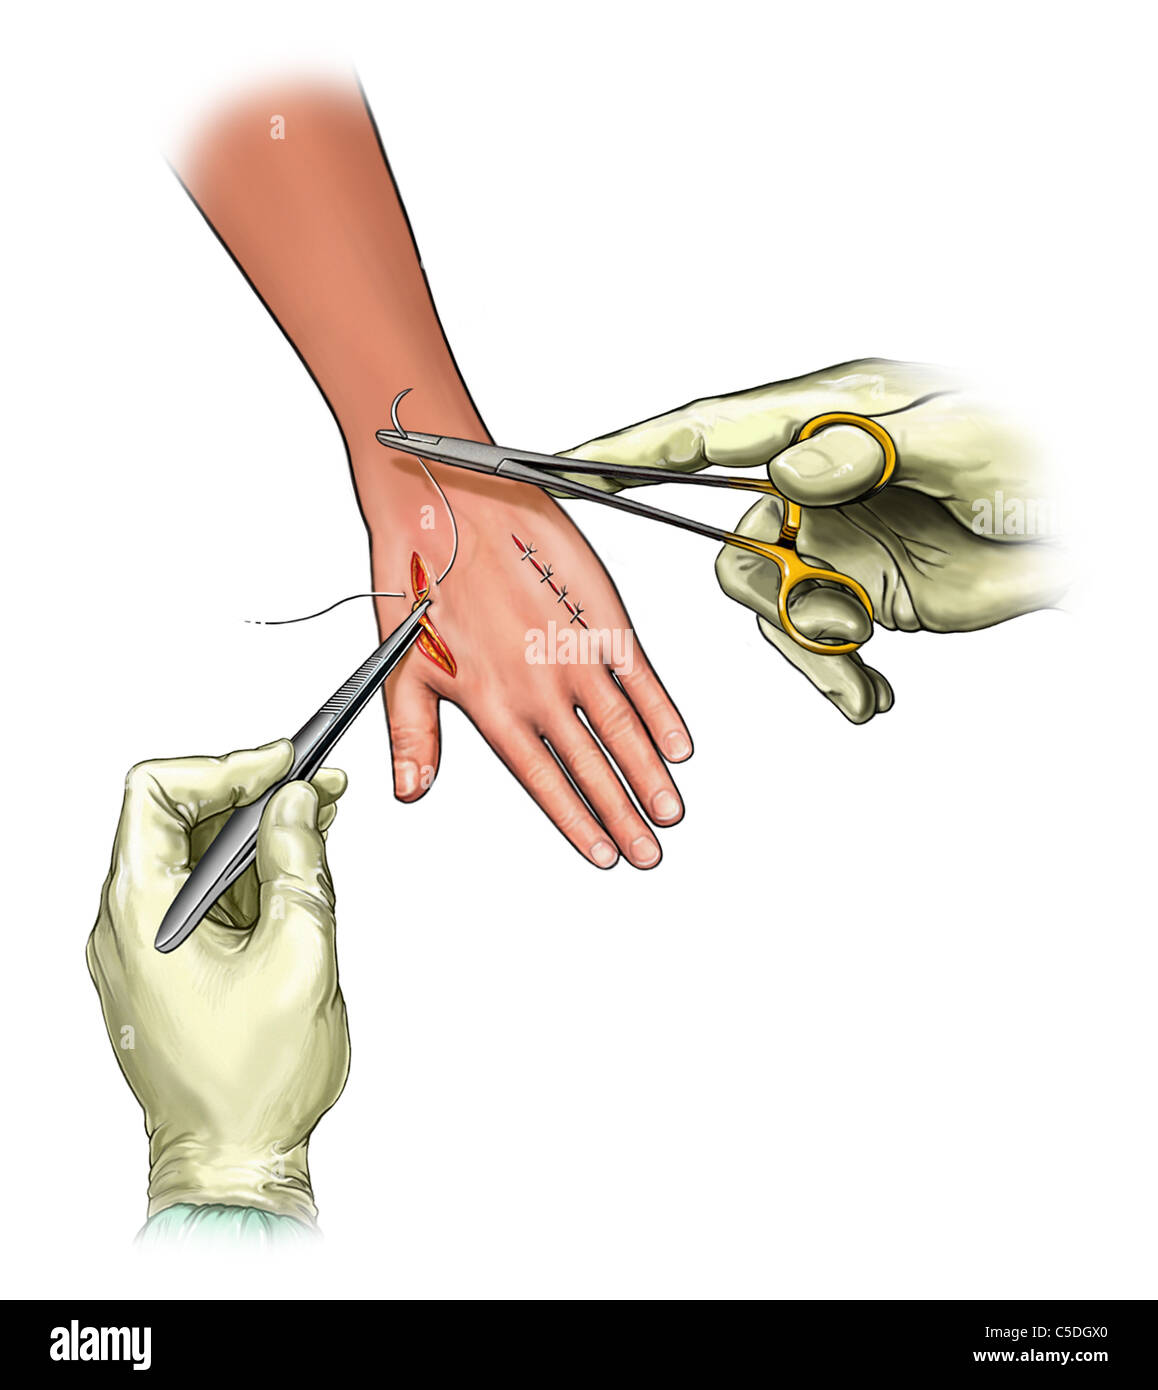 Closure of fasciotomy incisions on dorsal hand - Stock Image